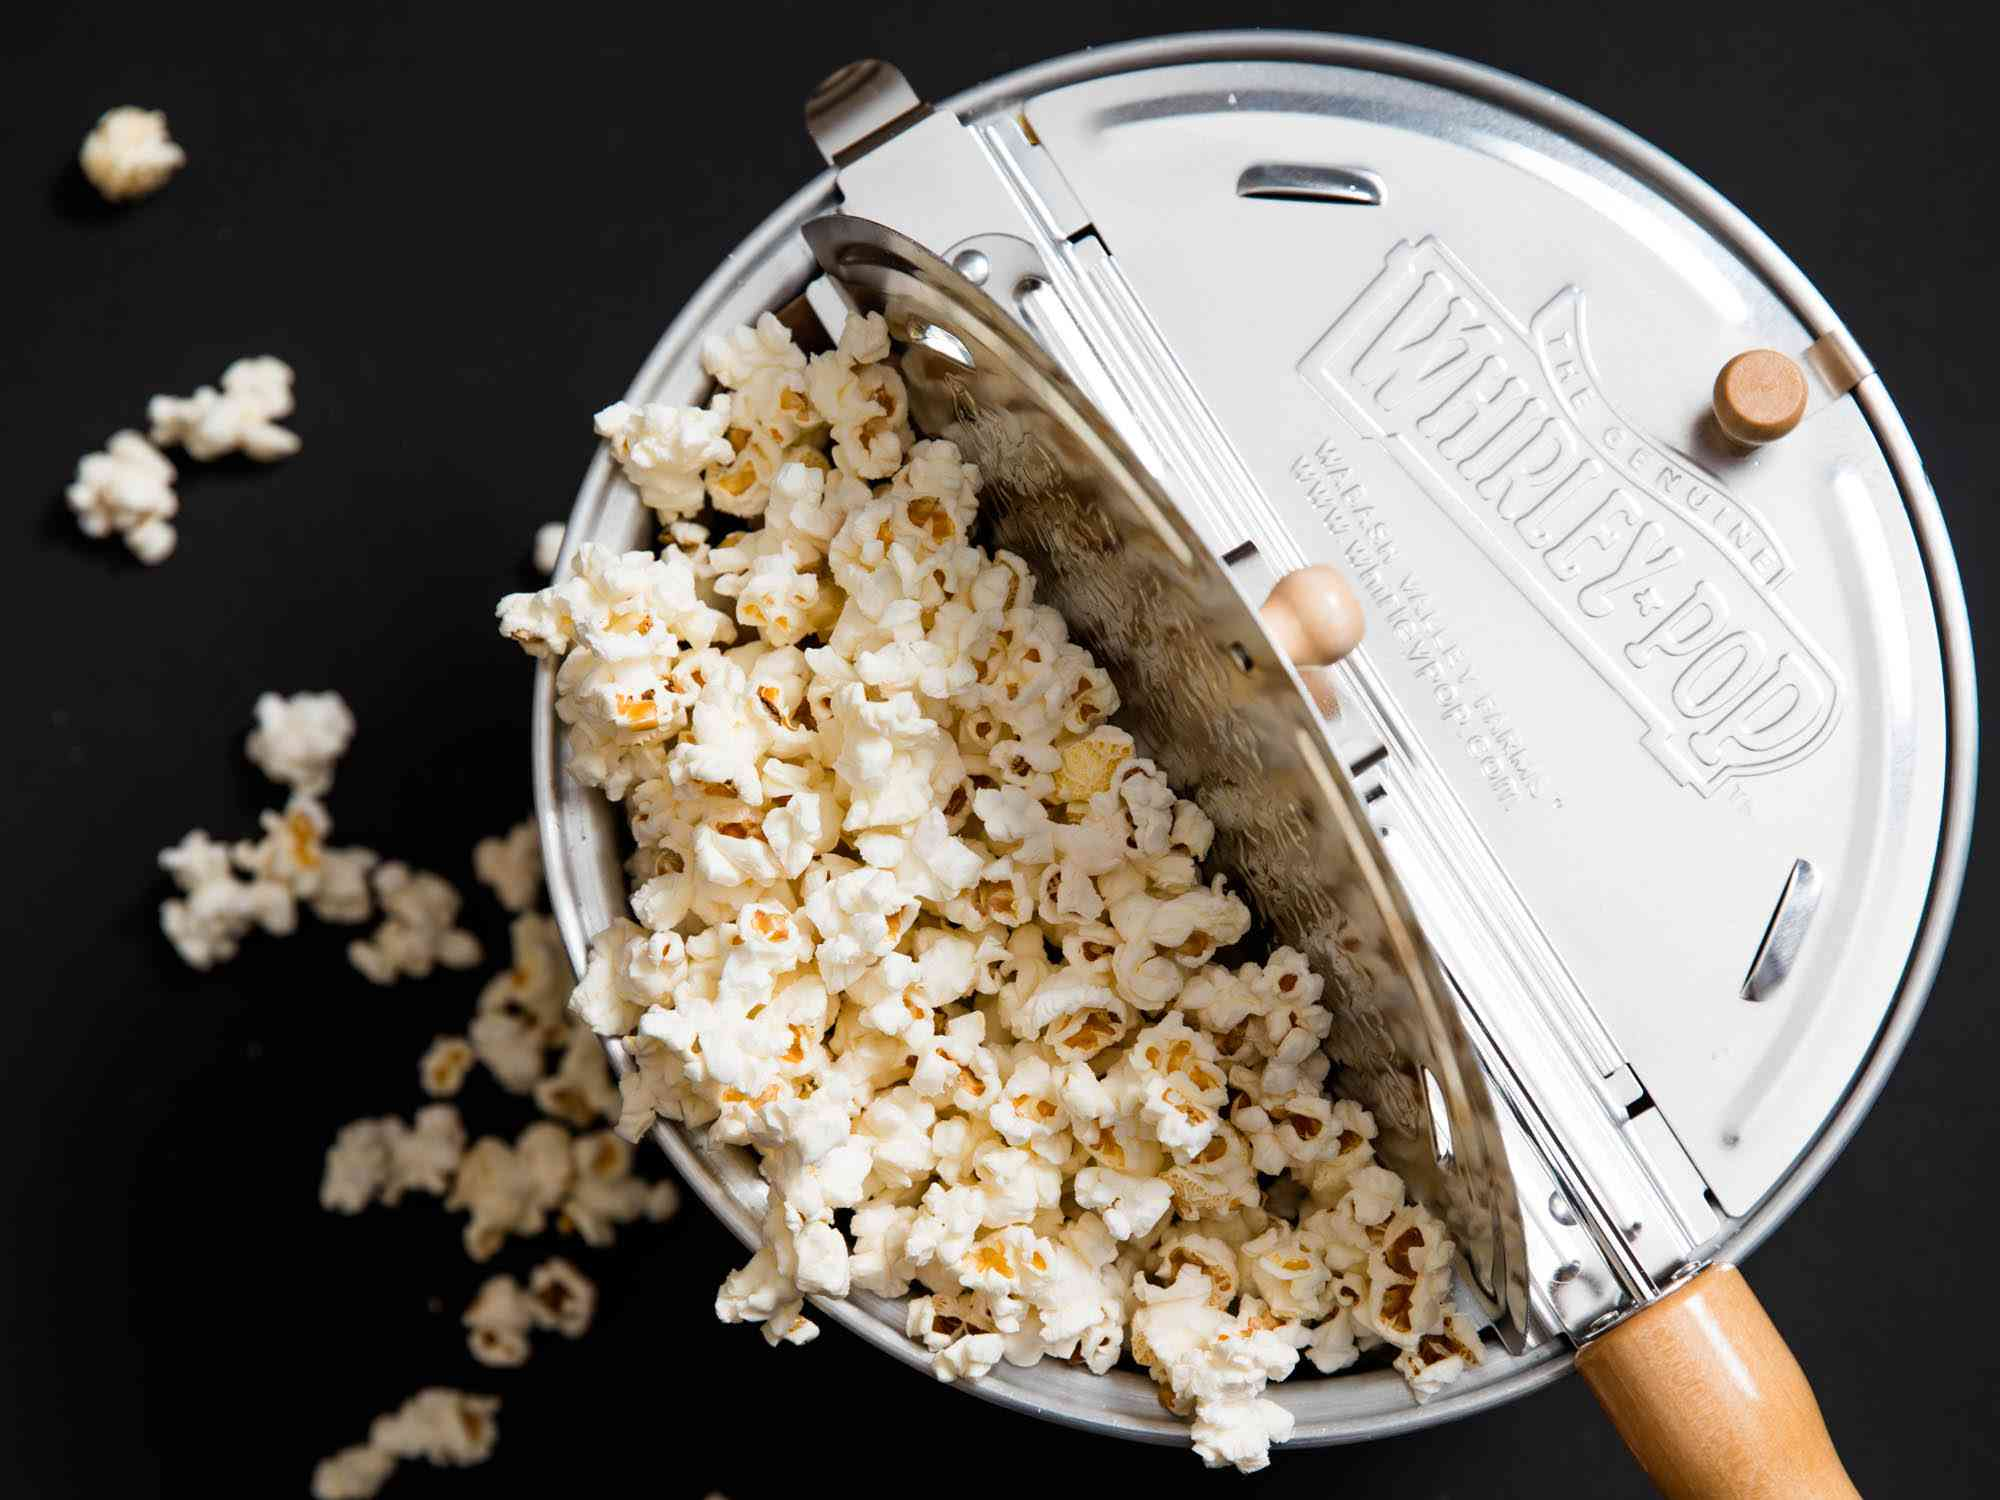 Overhead view of a Whirley Pop full of popcorn